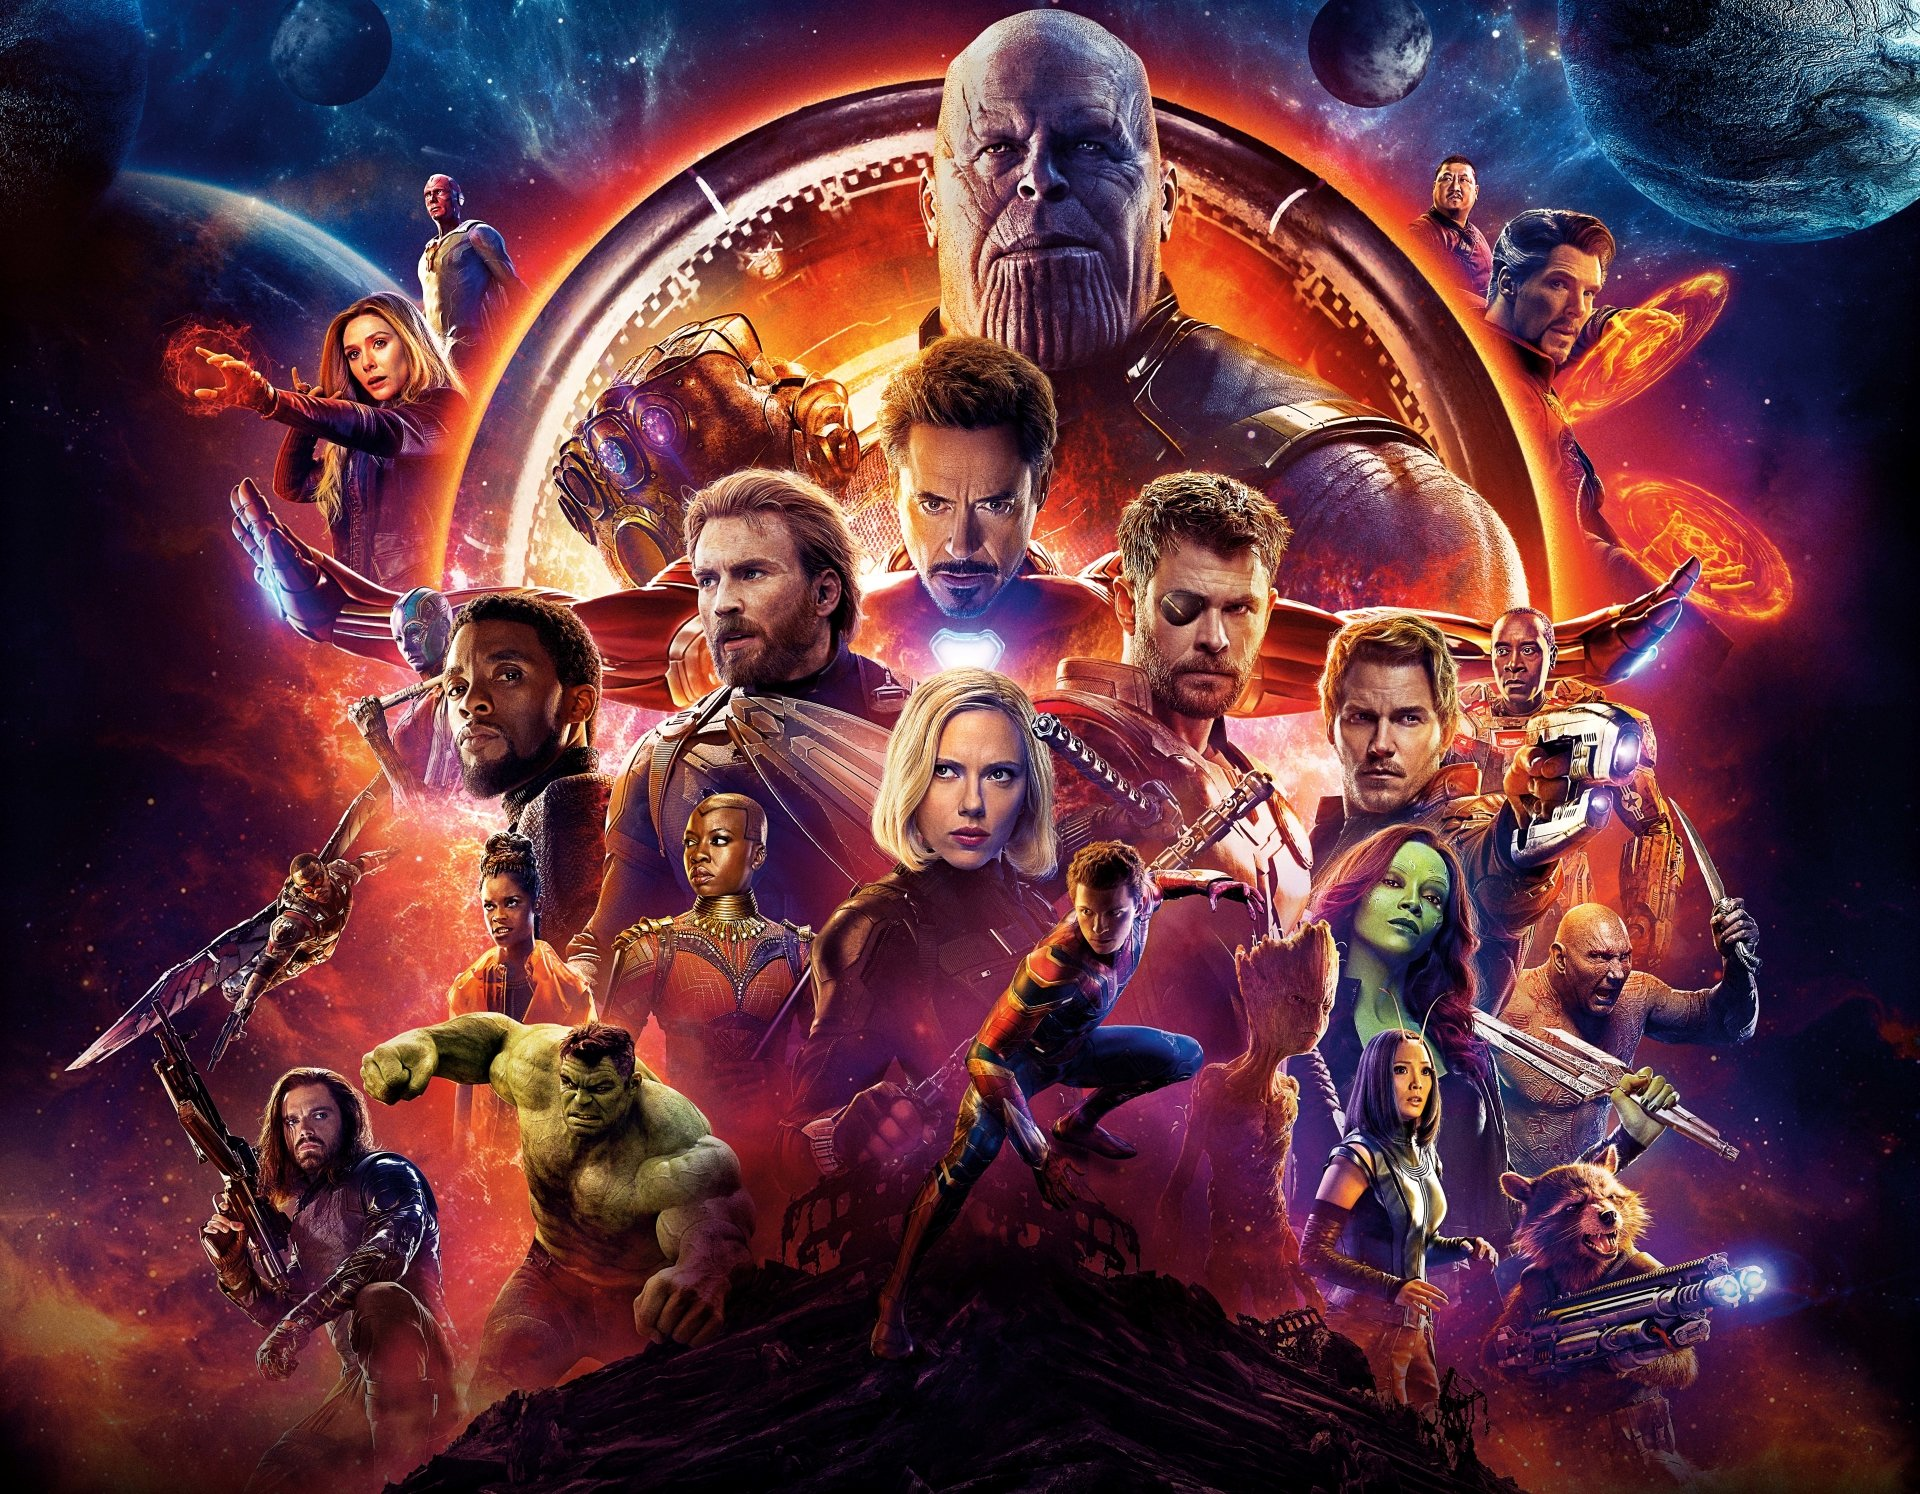 Avengers Infinity War Wallpaper 8k Ultra HD Wallpaper 1920x1494